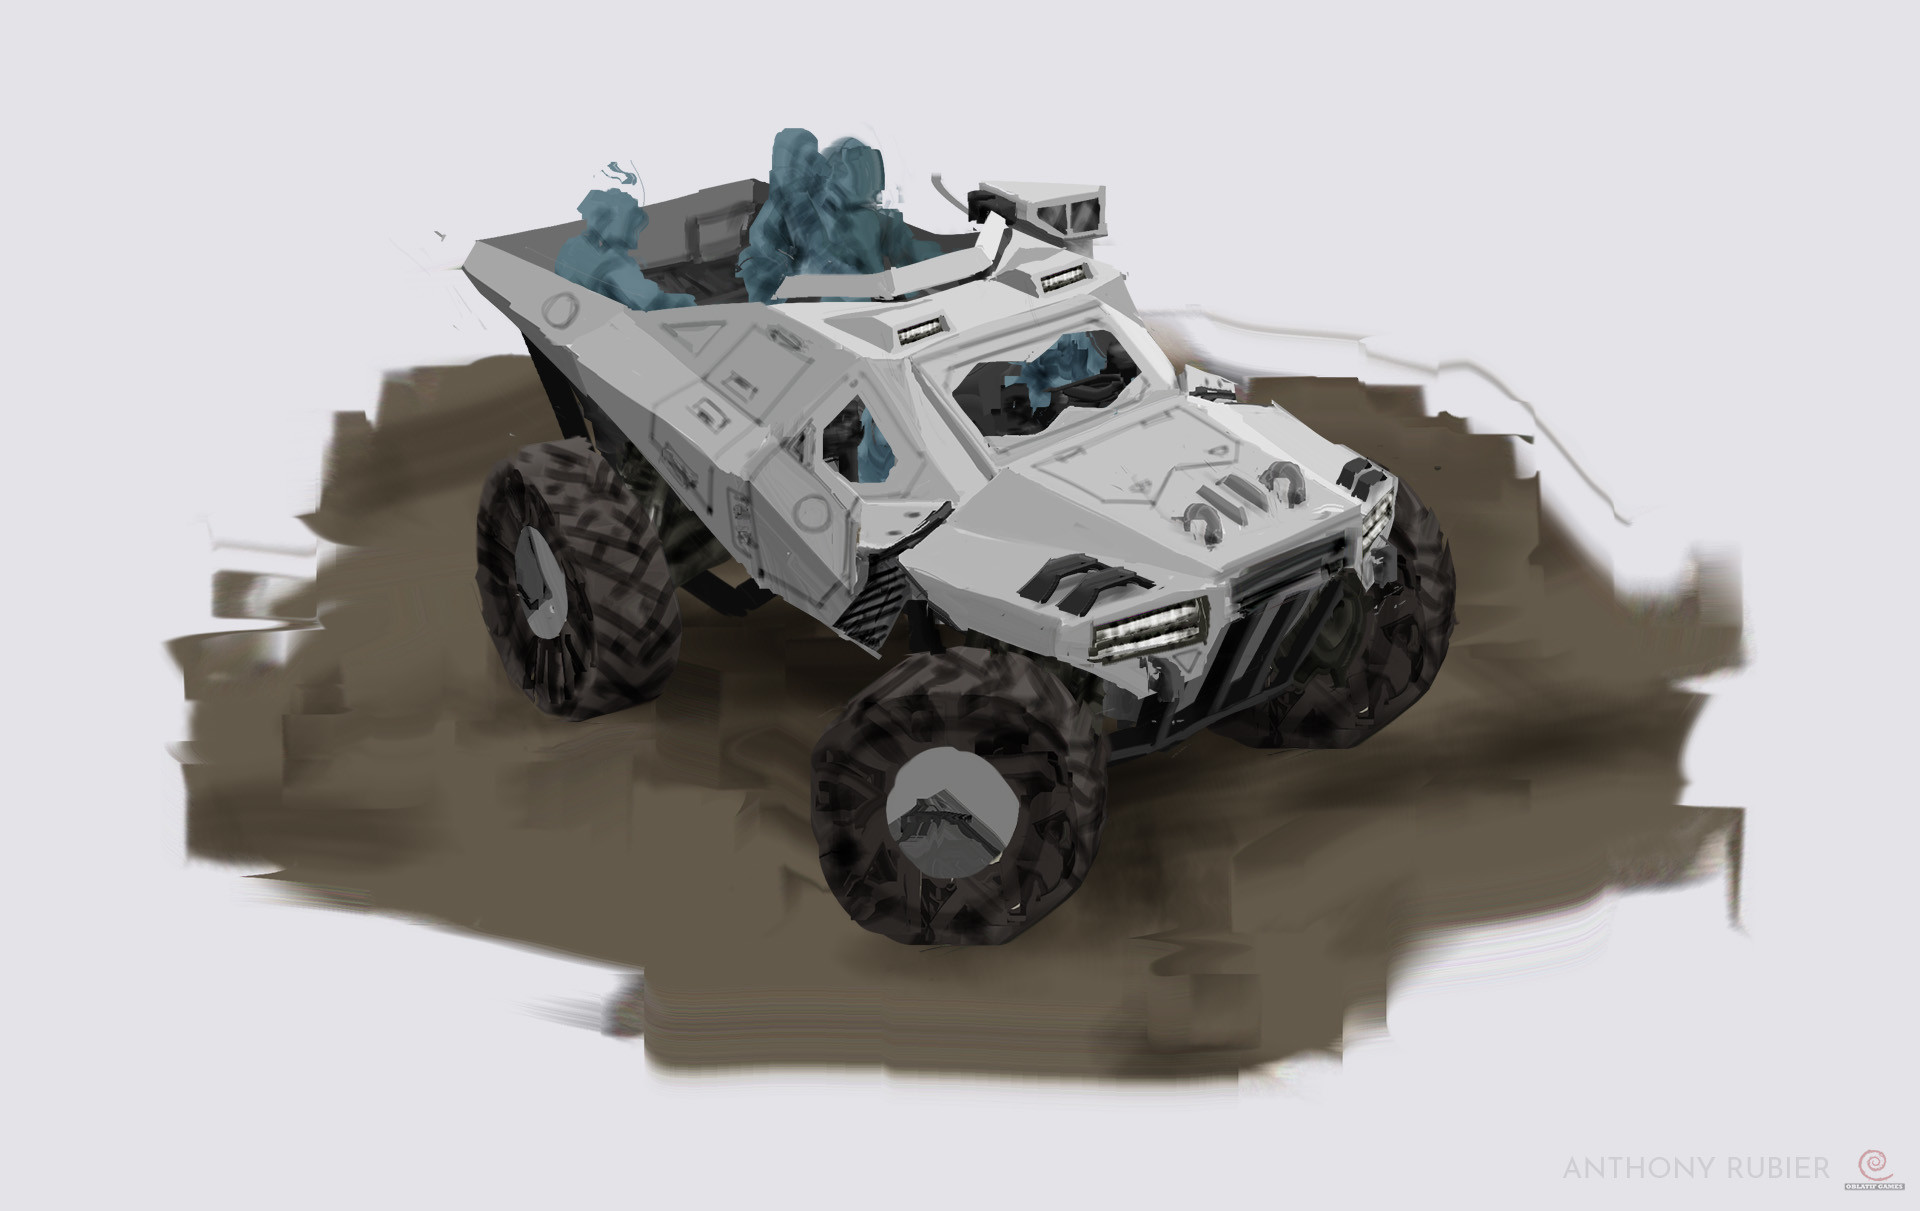 Anthony rubier concept buggy